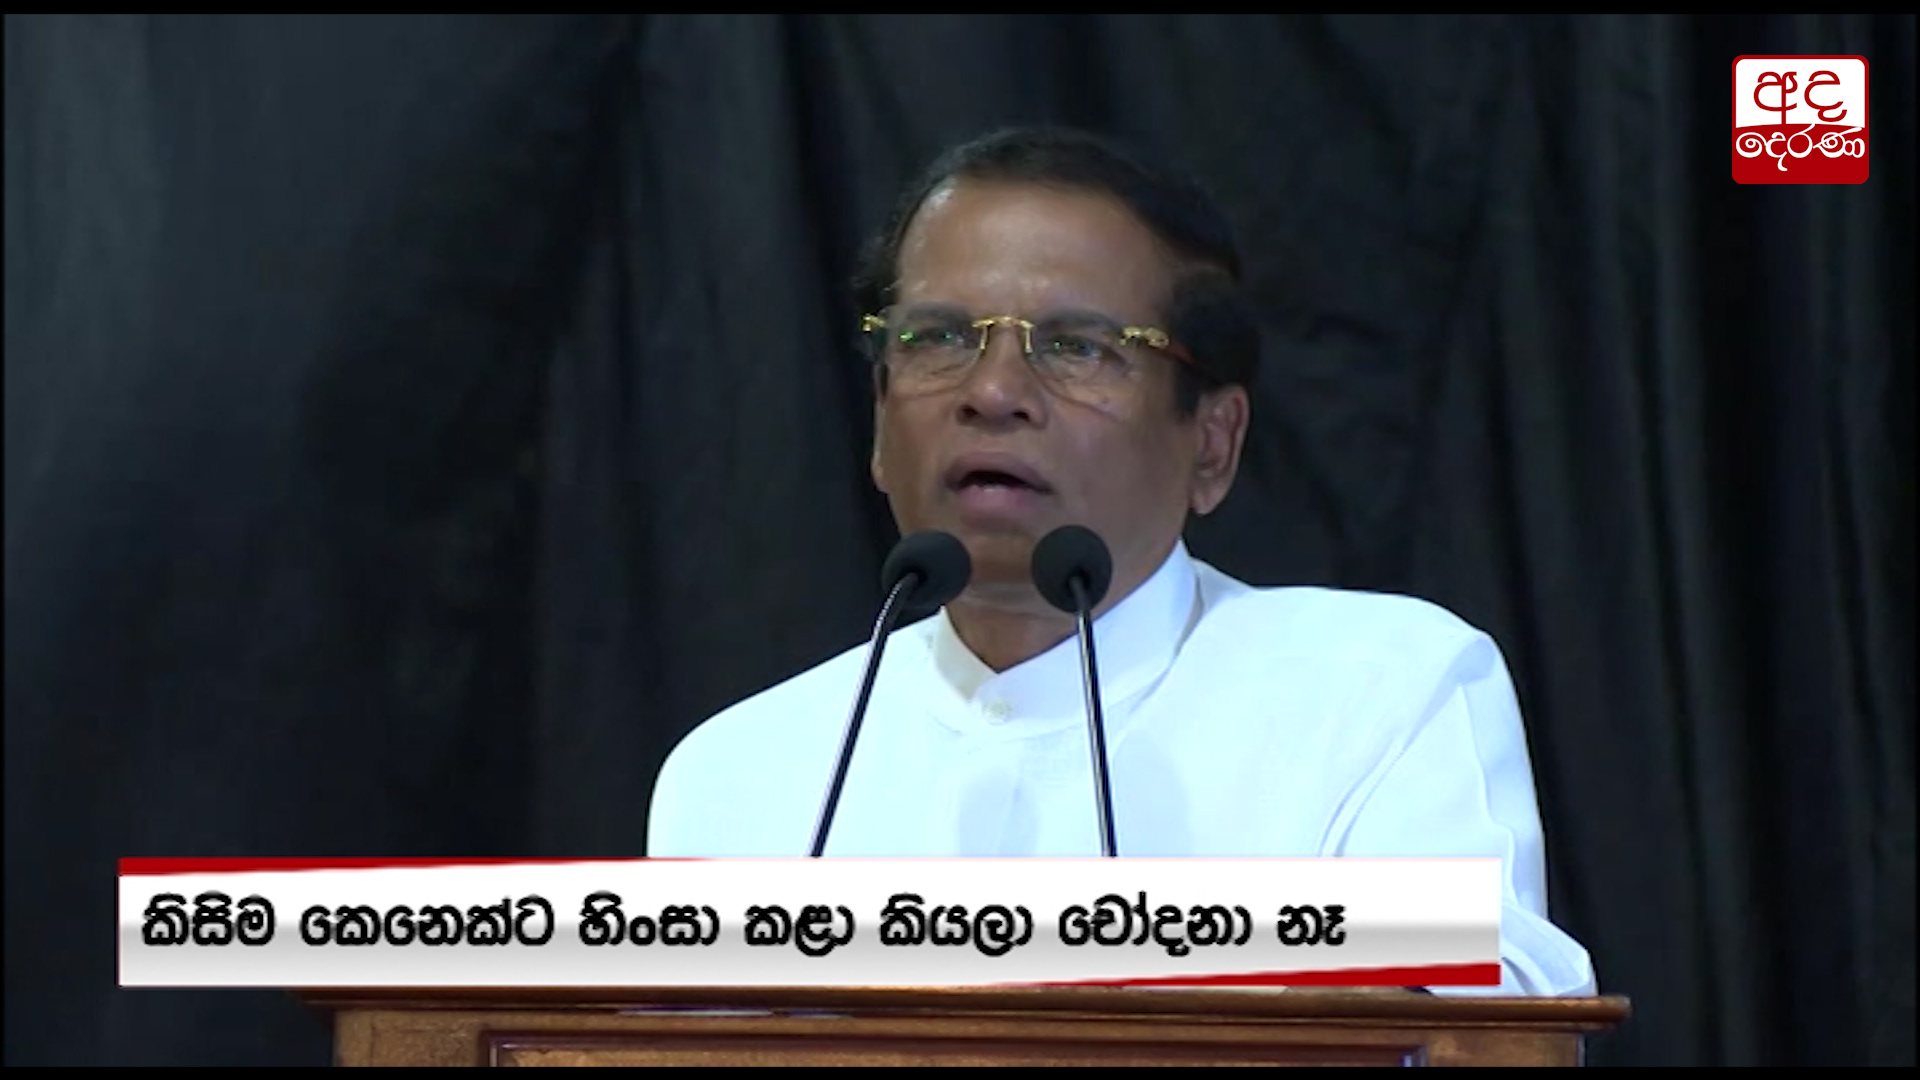 Cannot approve of insulting Maha Sangha - President